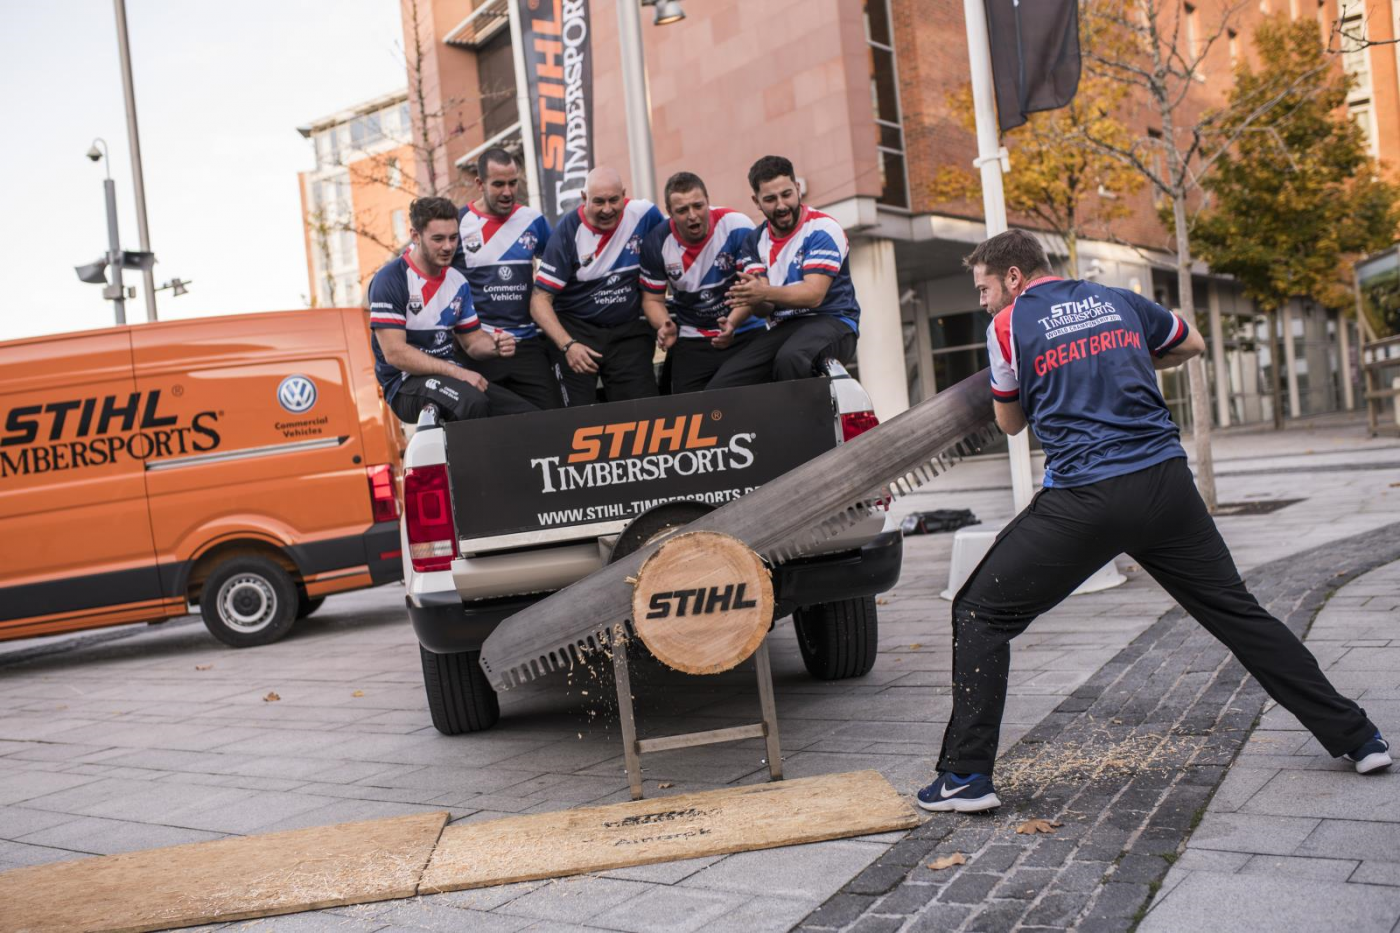 d6a8e65056 Volkswagen Commercial Vehicles provided fleet support for the STIHL  TIMBERSPORTS® World Championship held in the UK for the very first time  this weekend at ...